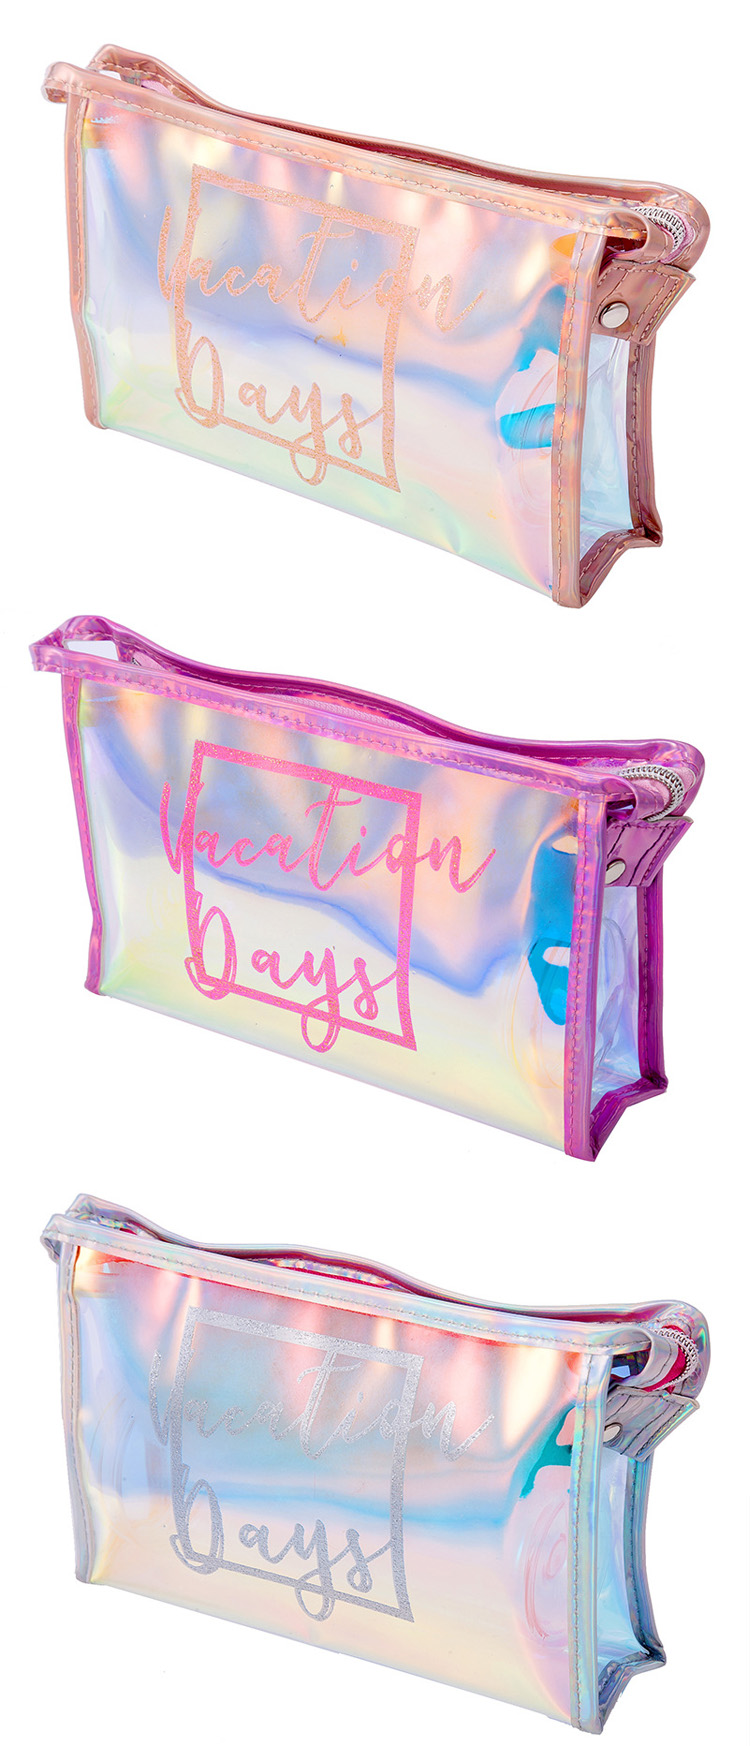 Laser logo plastic pvc pink jelly sparkles glitter iridescent holographic clutch women travel toiletry makeup cosmetic bag